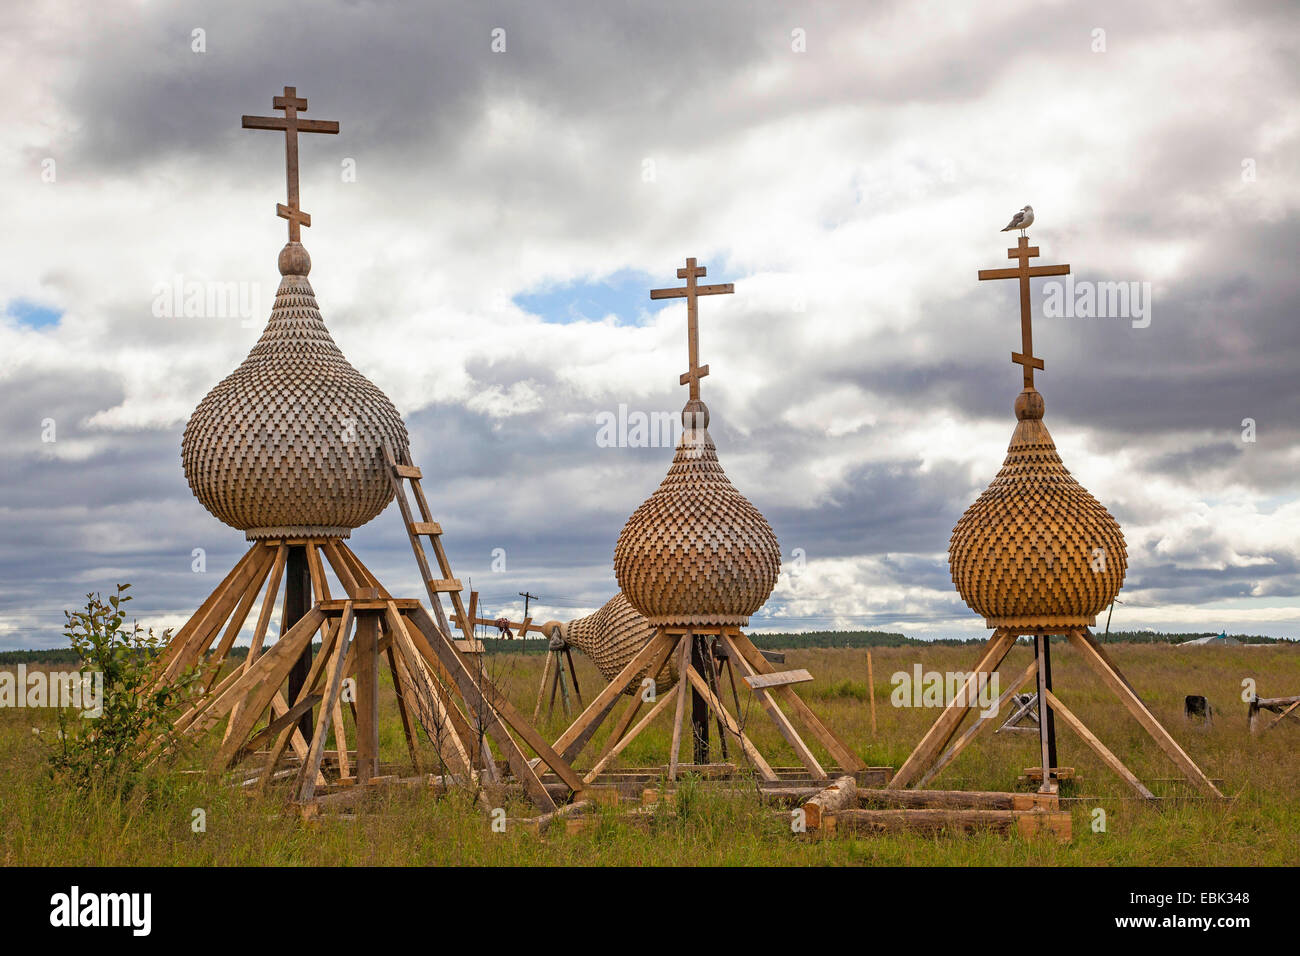 workhop for orthodox wooden chruch domes, Russia, Oblast Murmansk, Kola, Varzuga - Stock Image